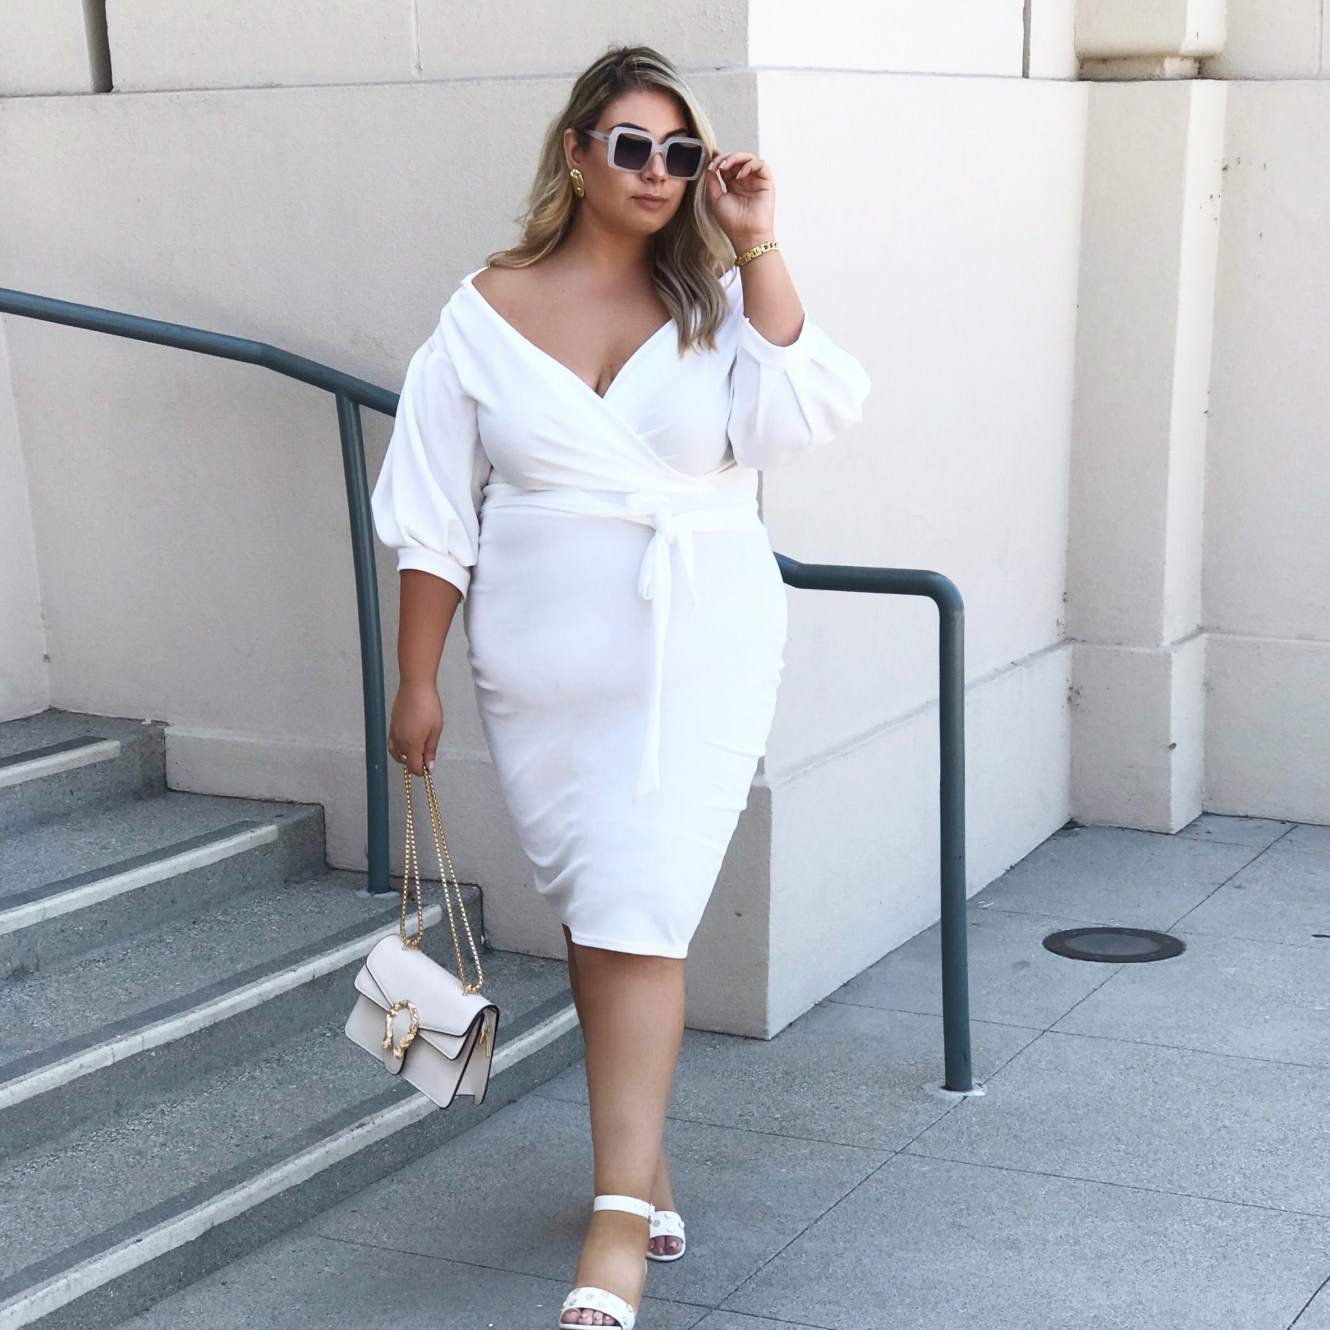 22 Plus Size Outfit Ideas for Parties and Going Out